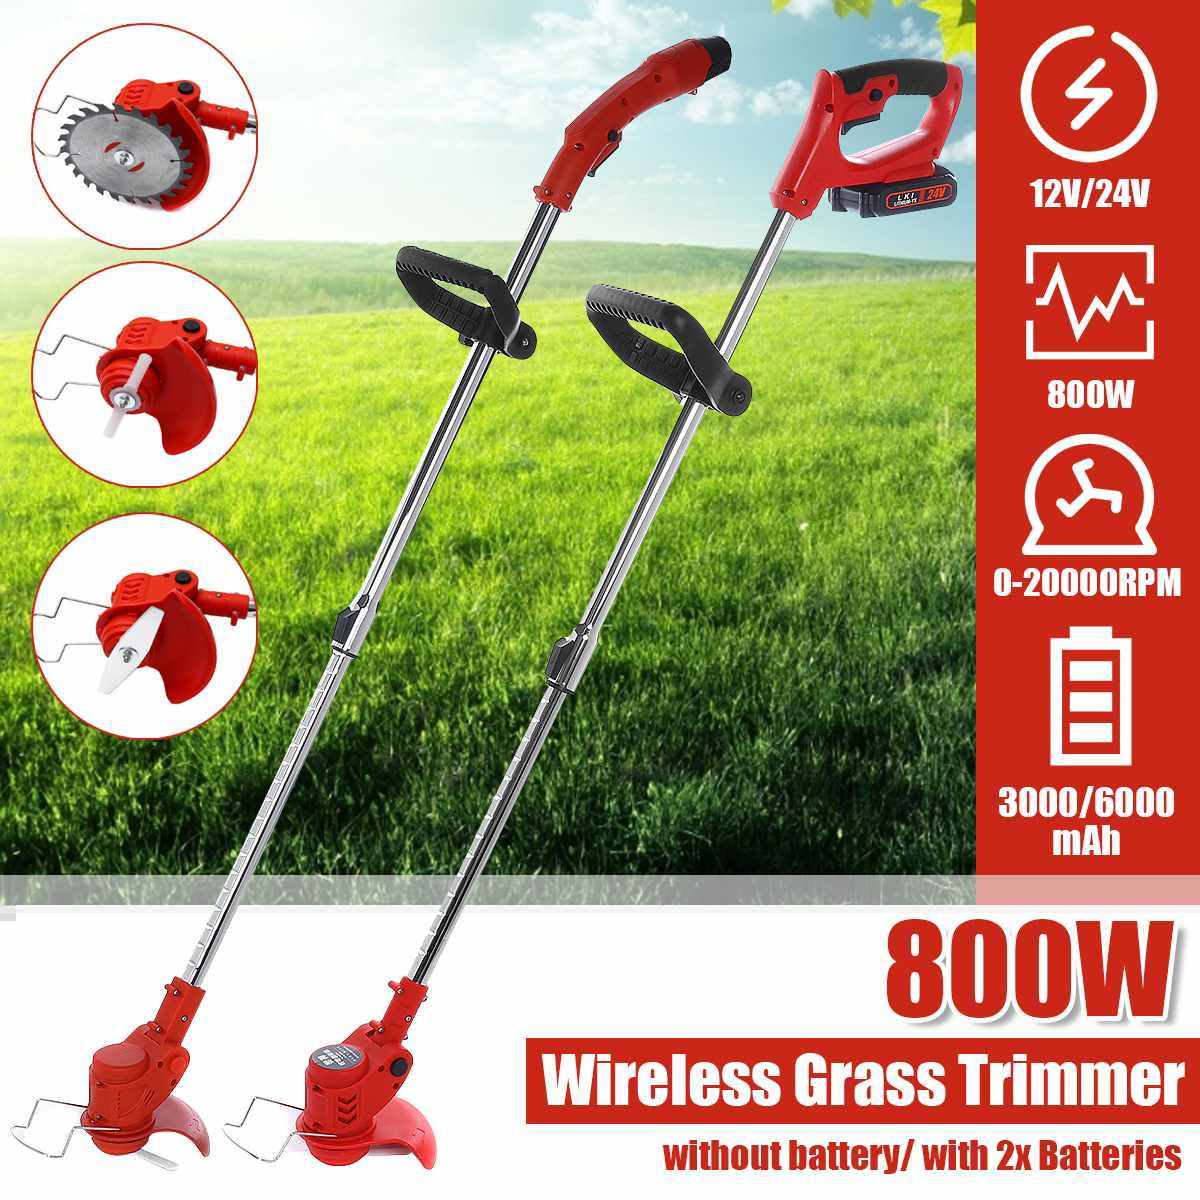 12 24V Cordless Electric Grass Trimmer with 3000 6000mAh Battery Adjustable Lawn Mower Home Push Lawnmower Garden Power Tool